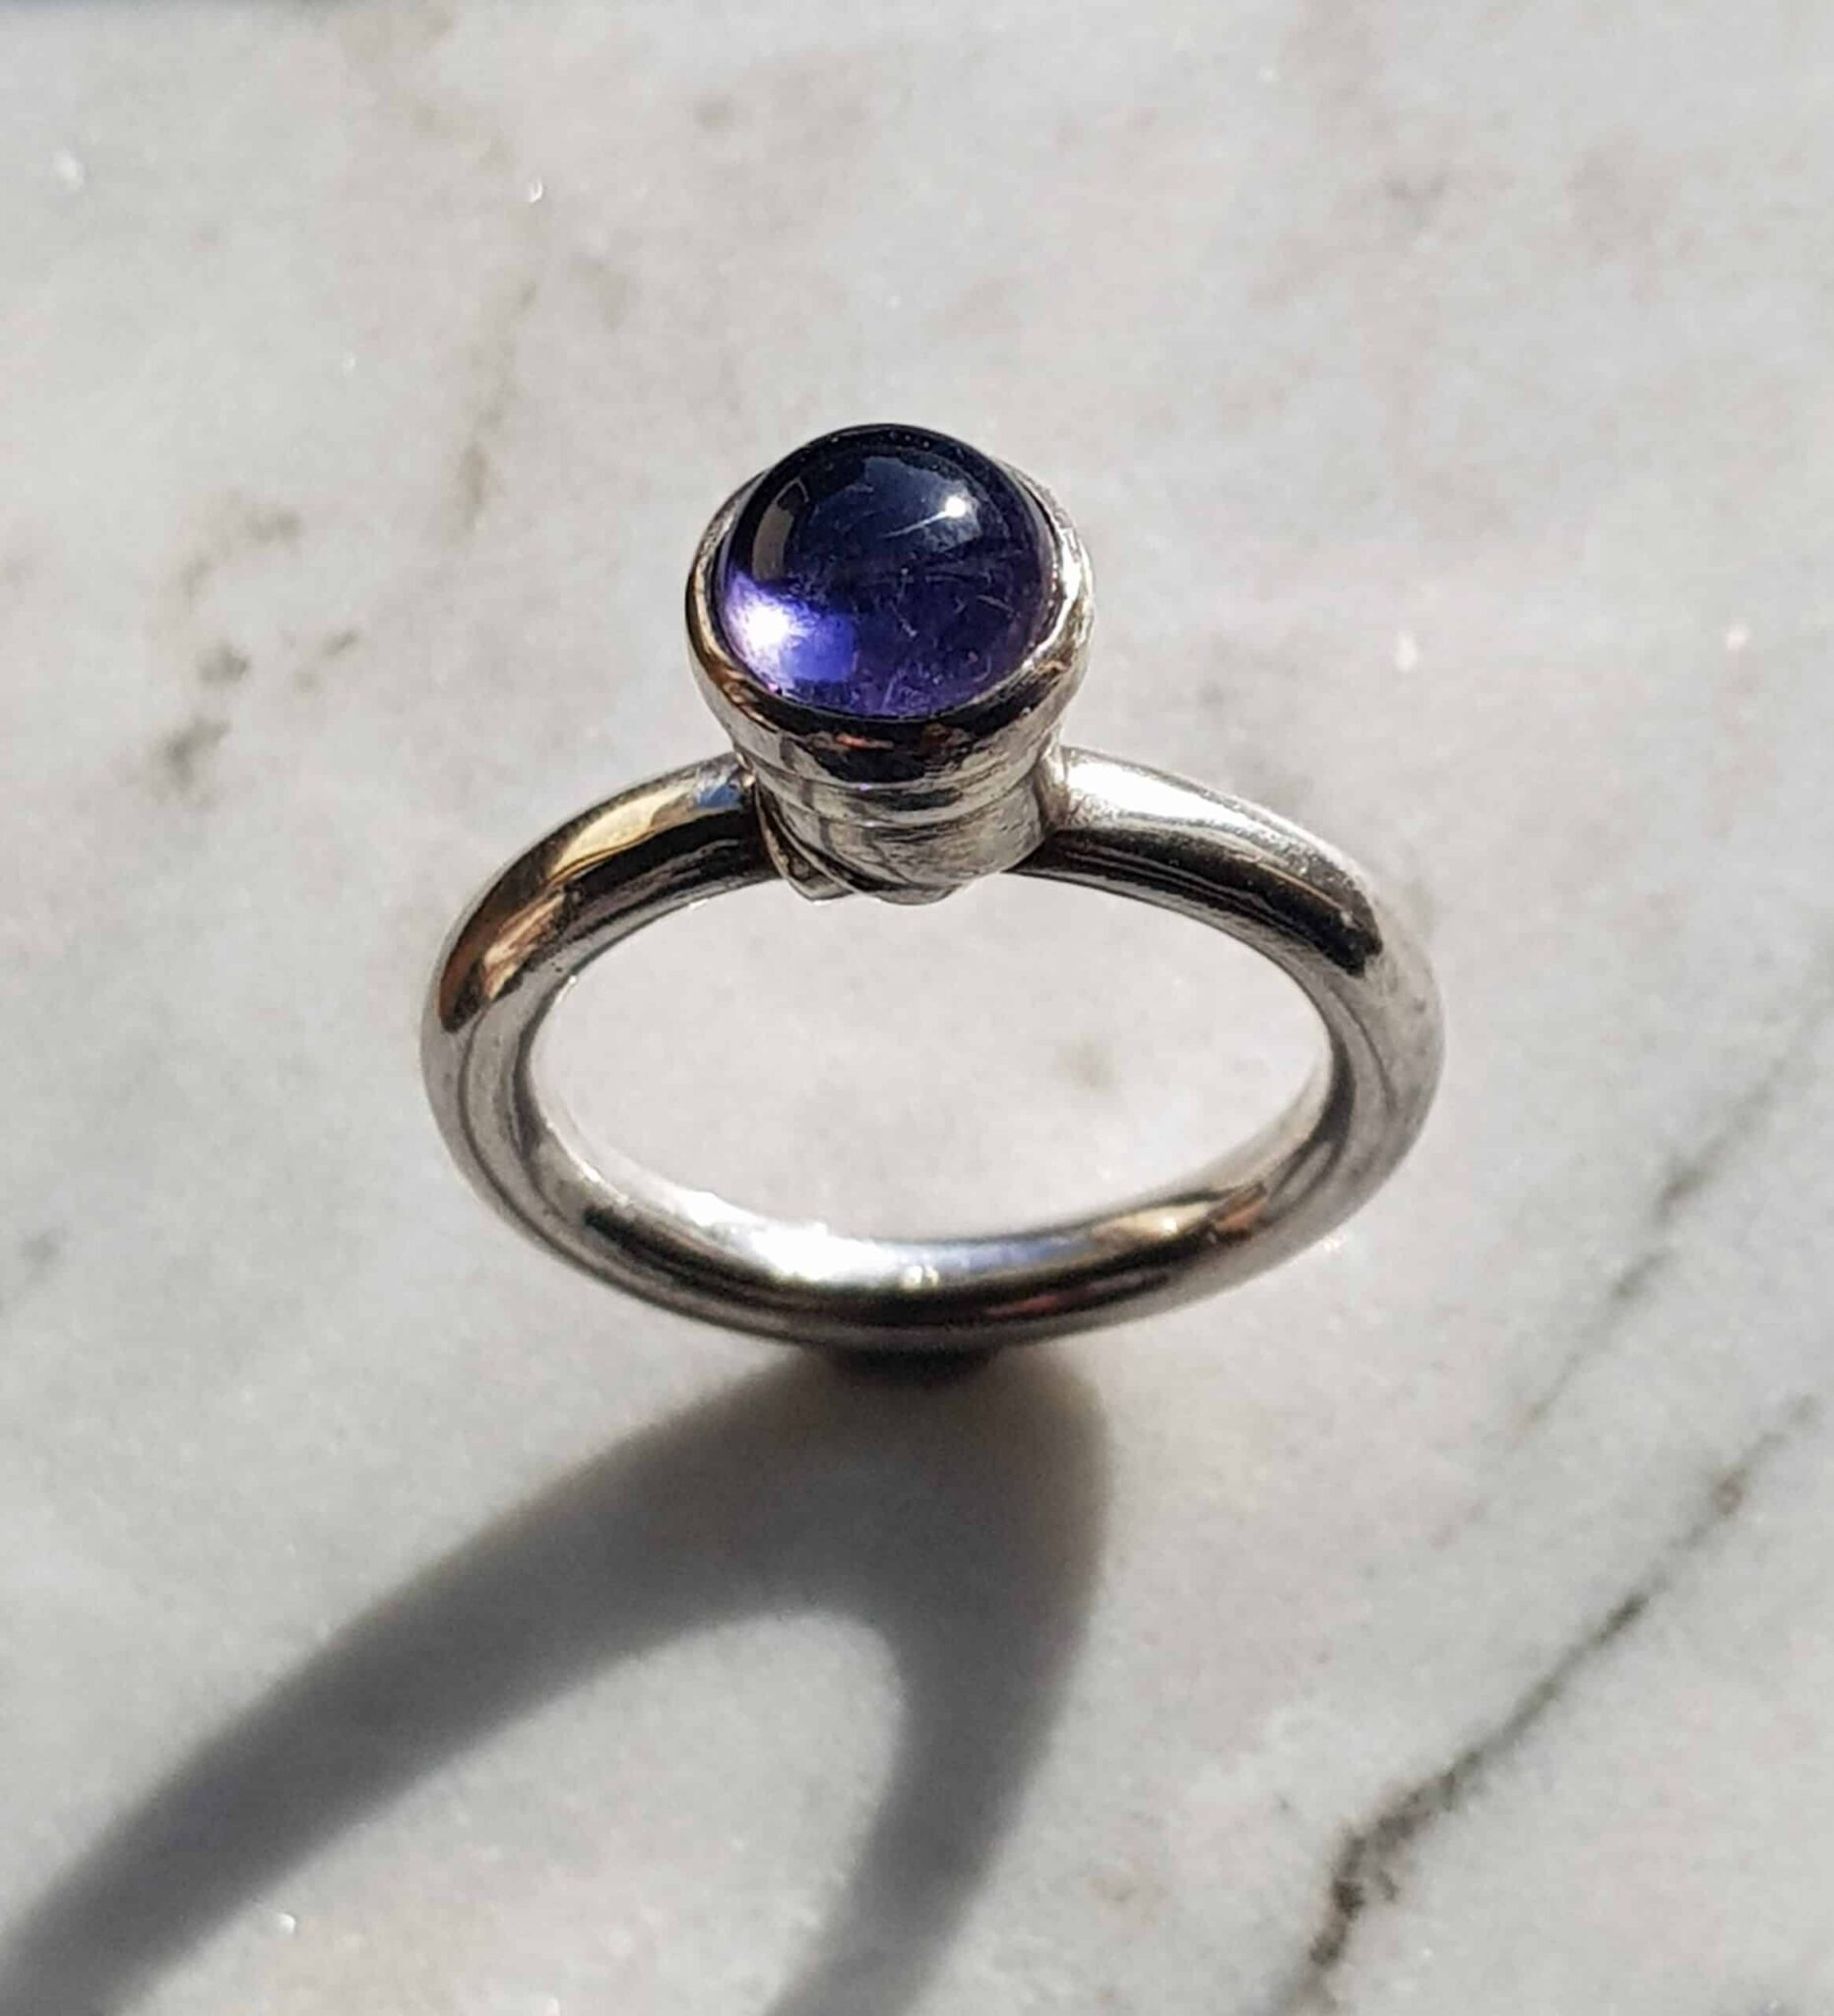 Periscope Silver Ring With Set Iolite – By Corinne Lomon